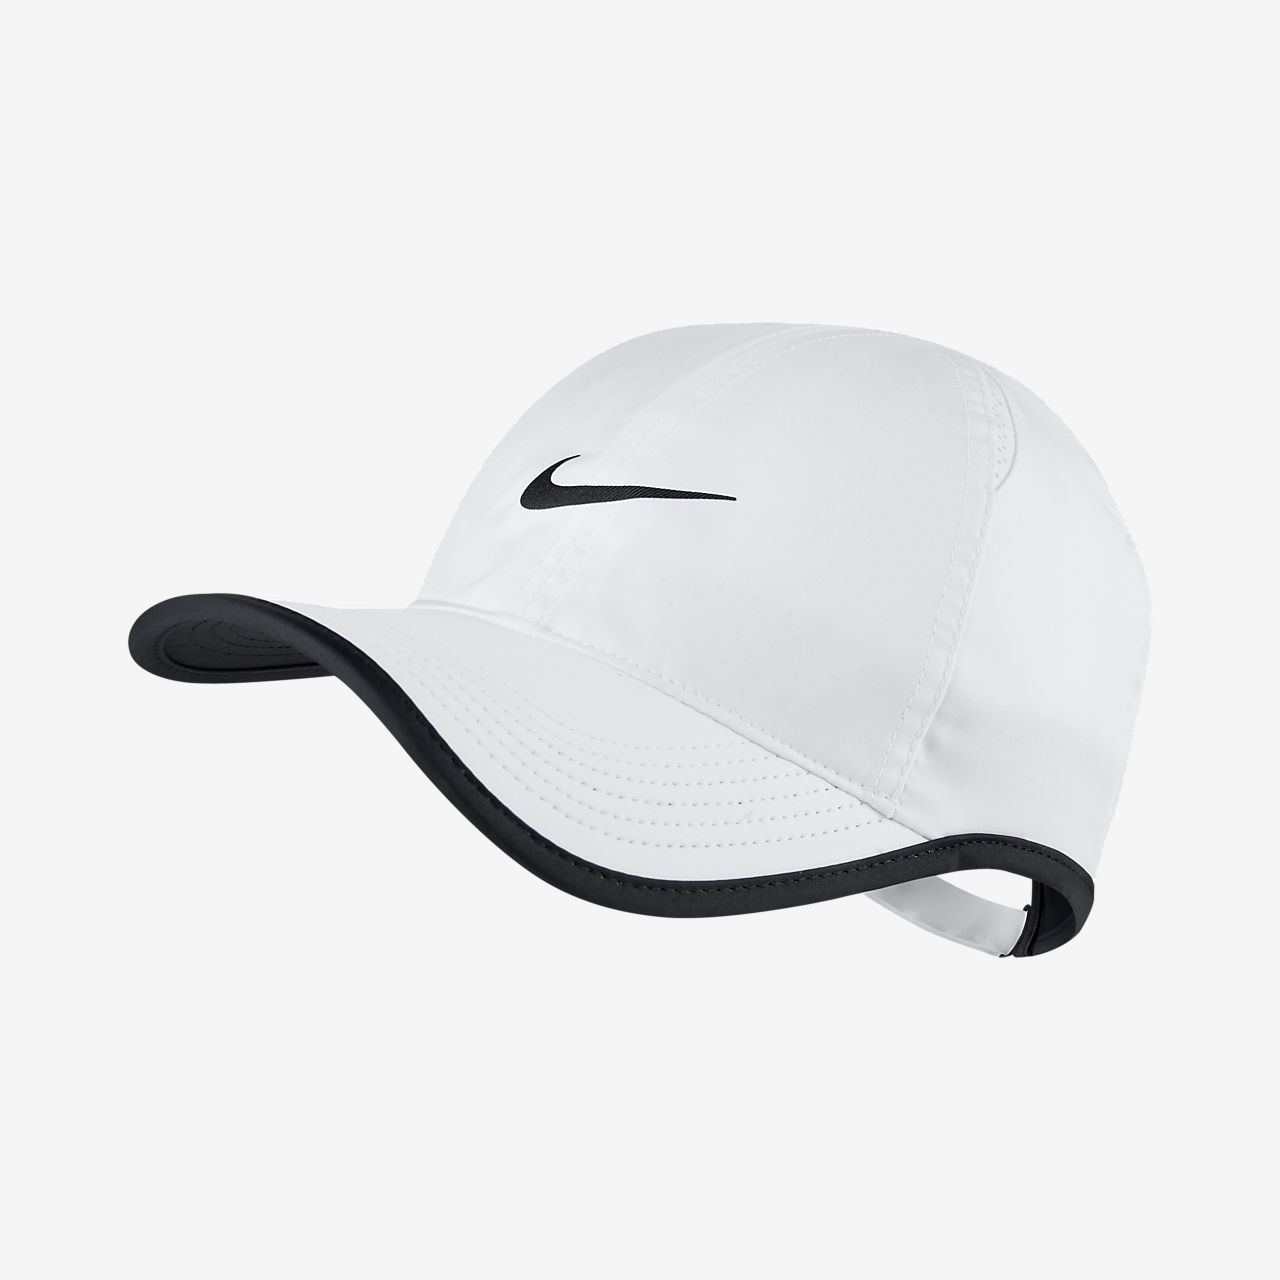 88d7fb0db85 Low Resolution NikeCourt AeroBill Featherlight Tennis Cap NikeCourt  AeroBill Featherlight Tennis Cap